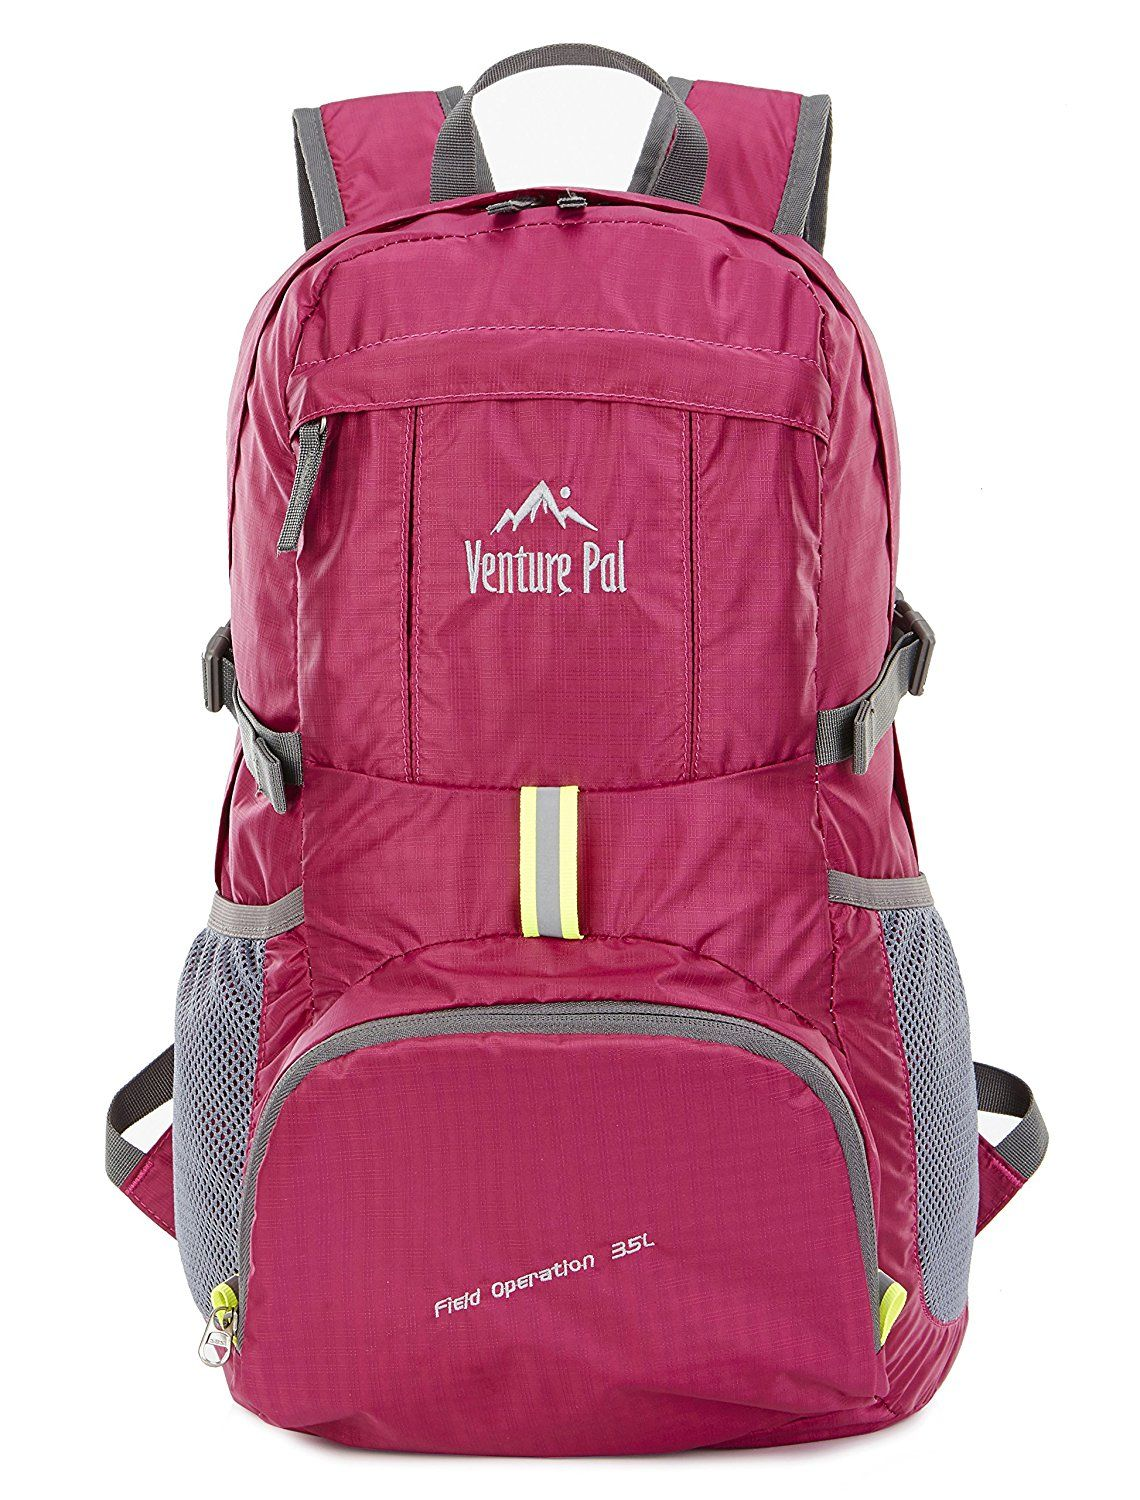 8e873cd1fc4 Amazon.com   Venture Pal Ultralight Lightweight Packable Foldable Travel  Camping Hiking Outdoor Sports Backpack